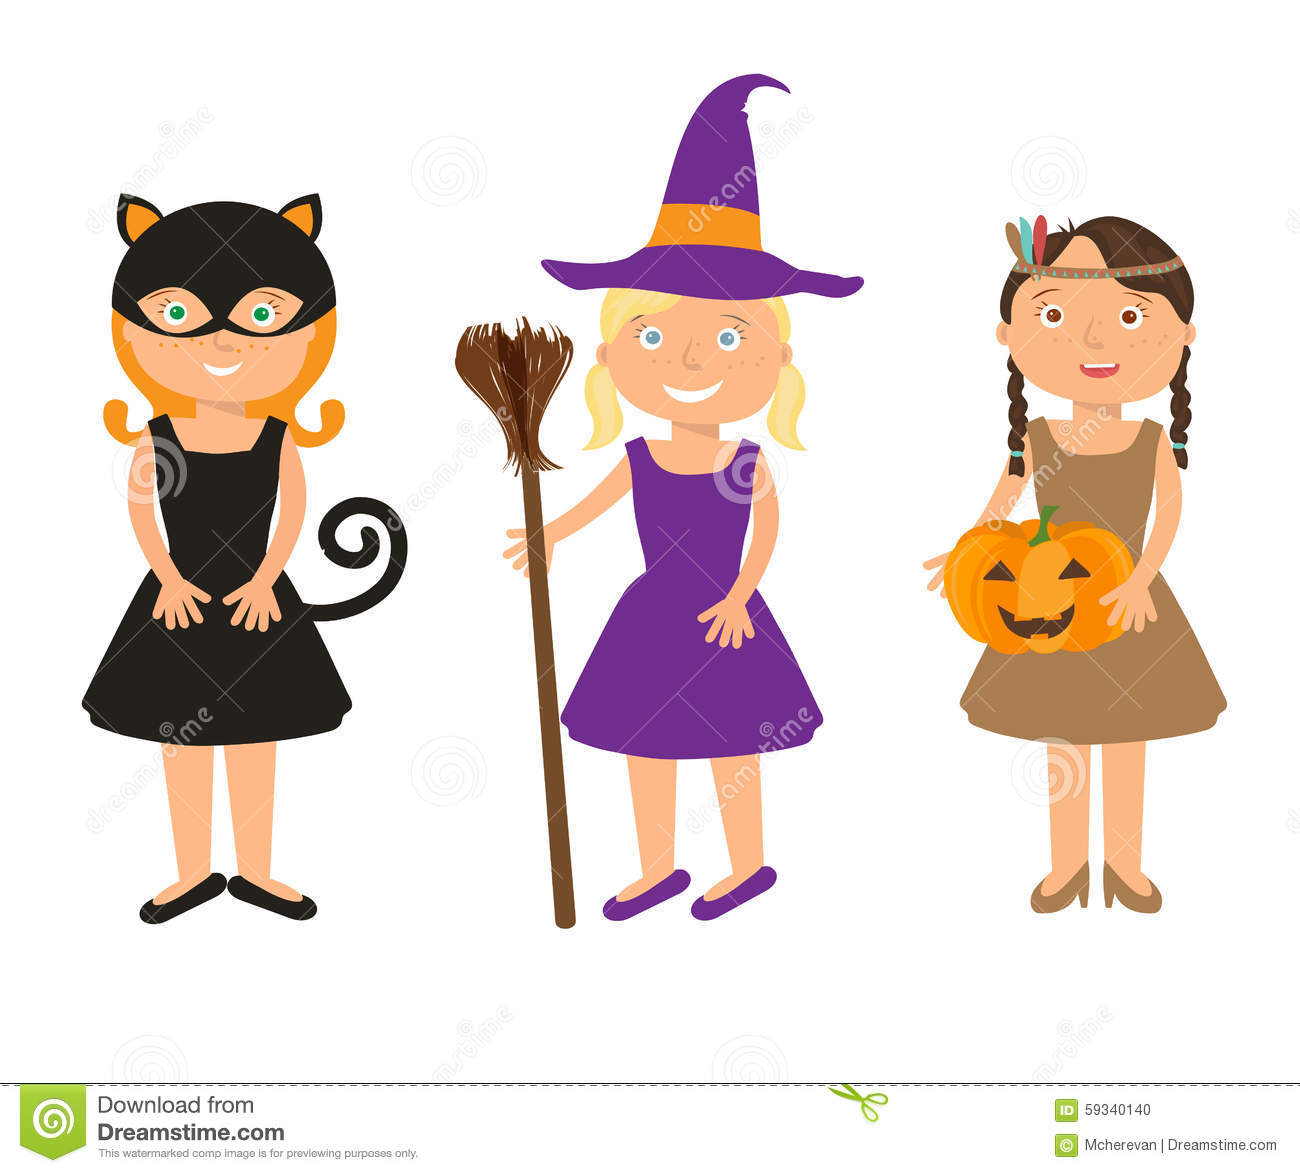 treat for halloween trick or treaters Halloween background with silhouettes of children trick or treating in halloween costume halloween funny ghost brownies, traditional halloween treats for kids funny halloween cupcakes with eye and bat wings, ghost, bones, witch hat, spiders and pumpkin.